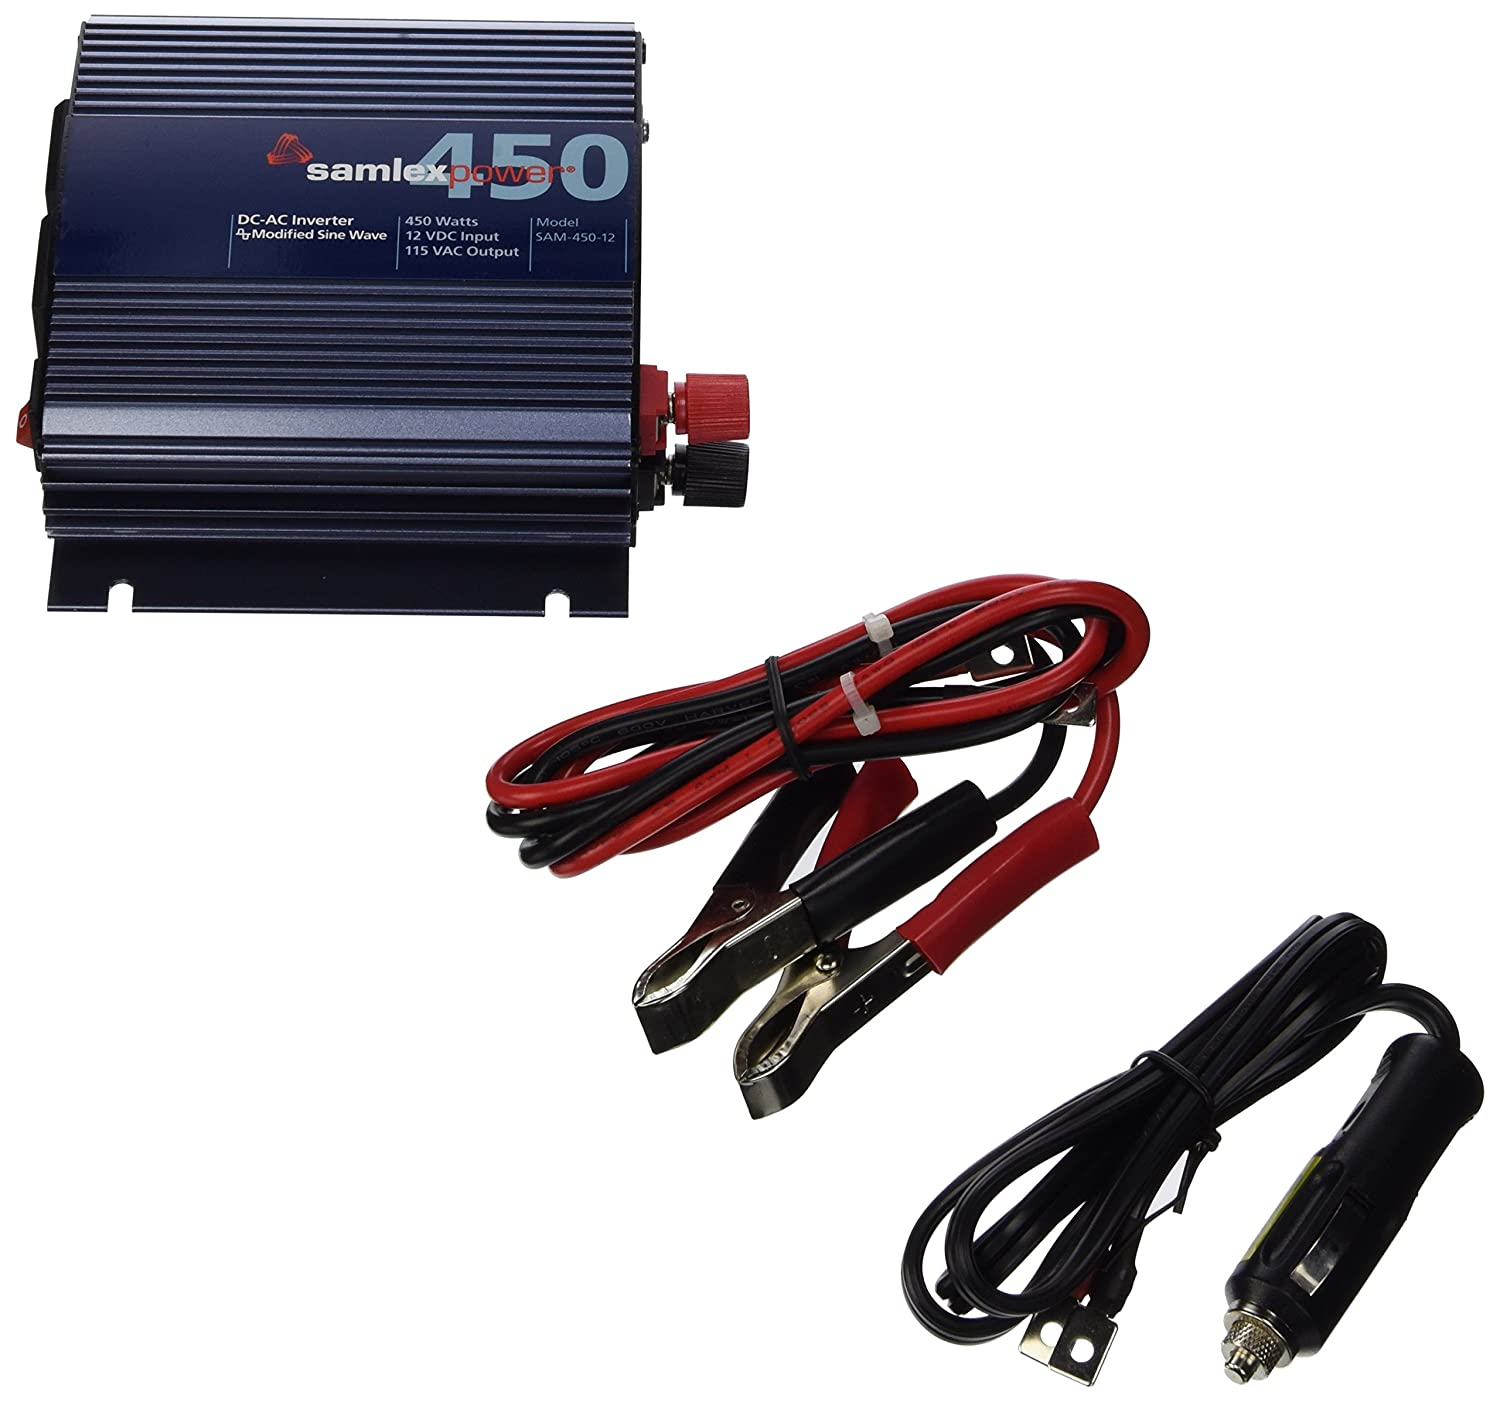 Samlex Solar Sam 450 12 Series Modified Sine Wave Inverter Circuit Homemade Designs Just For You Automotive